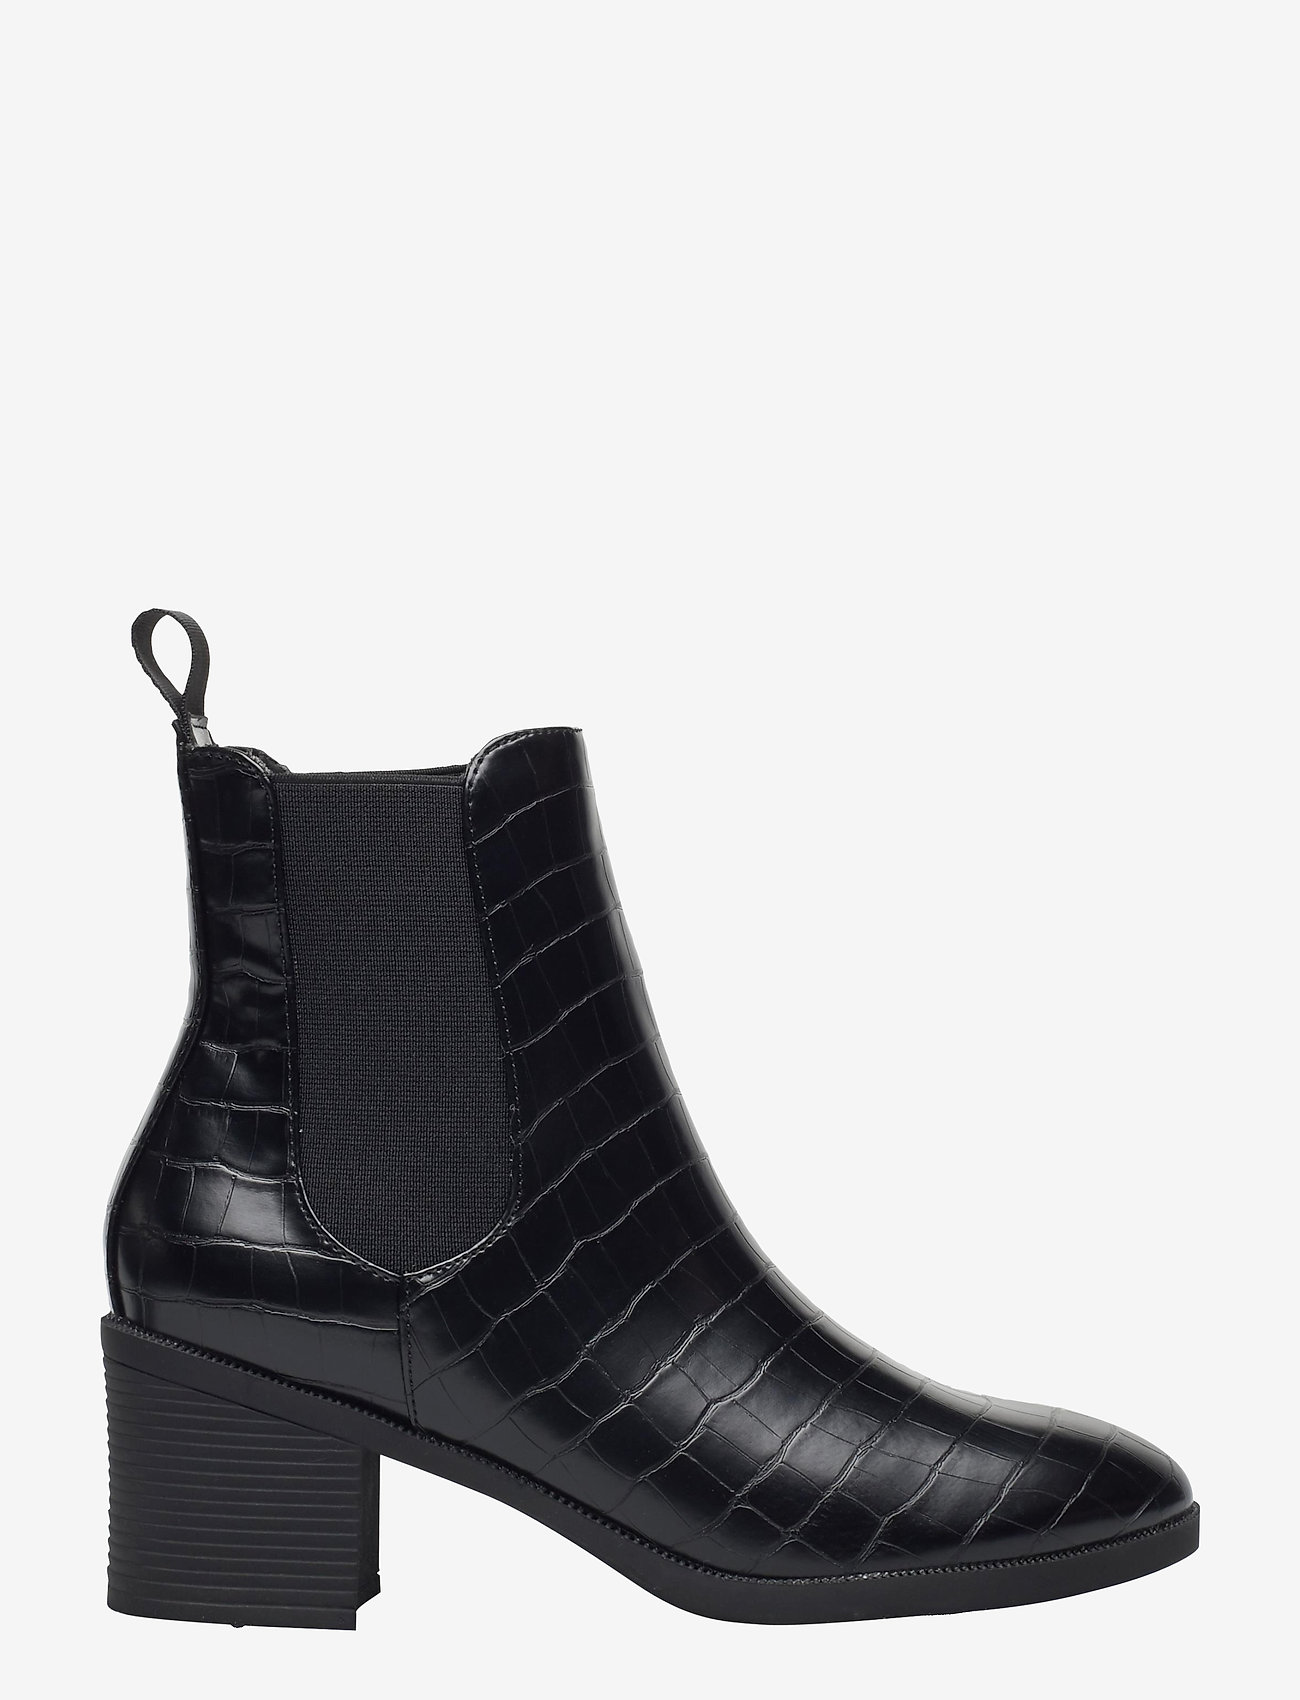 Dune London - PARKERR - chelsea boots - black - 1